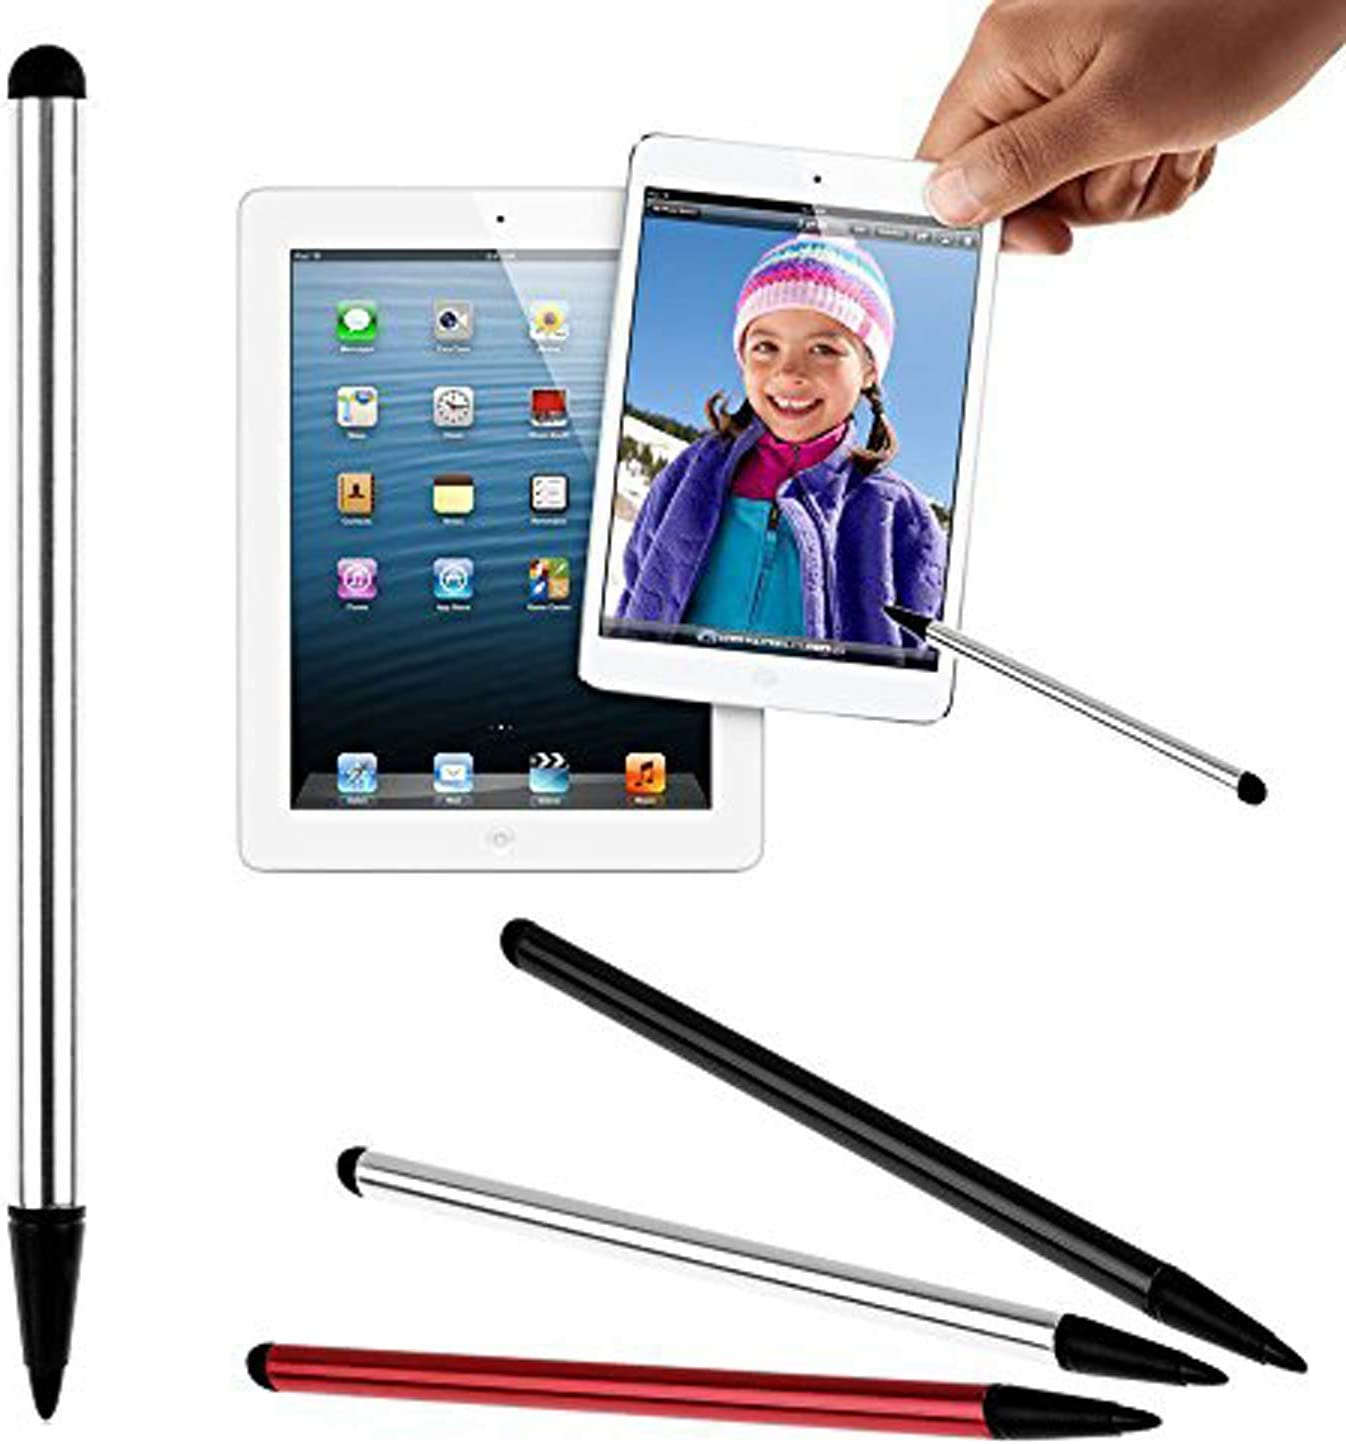 Retractable Touch Screen Stylus Pen for iPad iPhone Samsung Smartphone Tablet BB